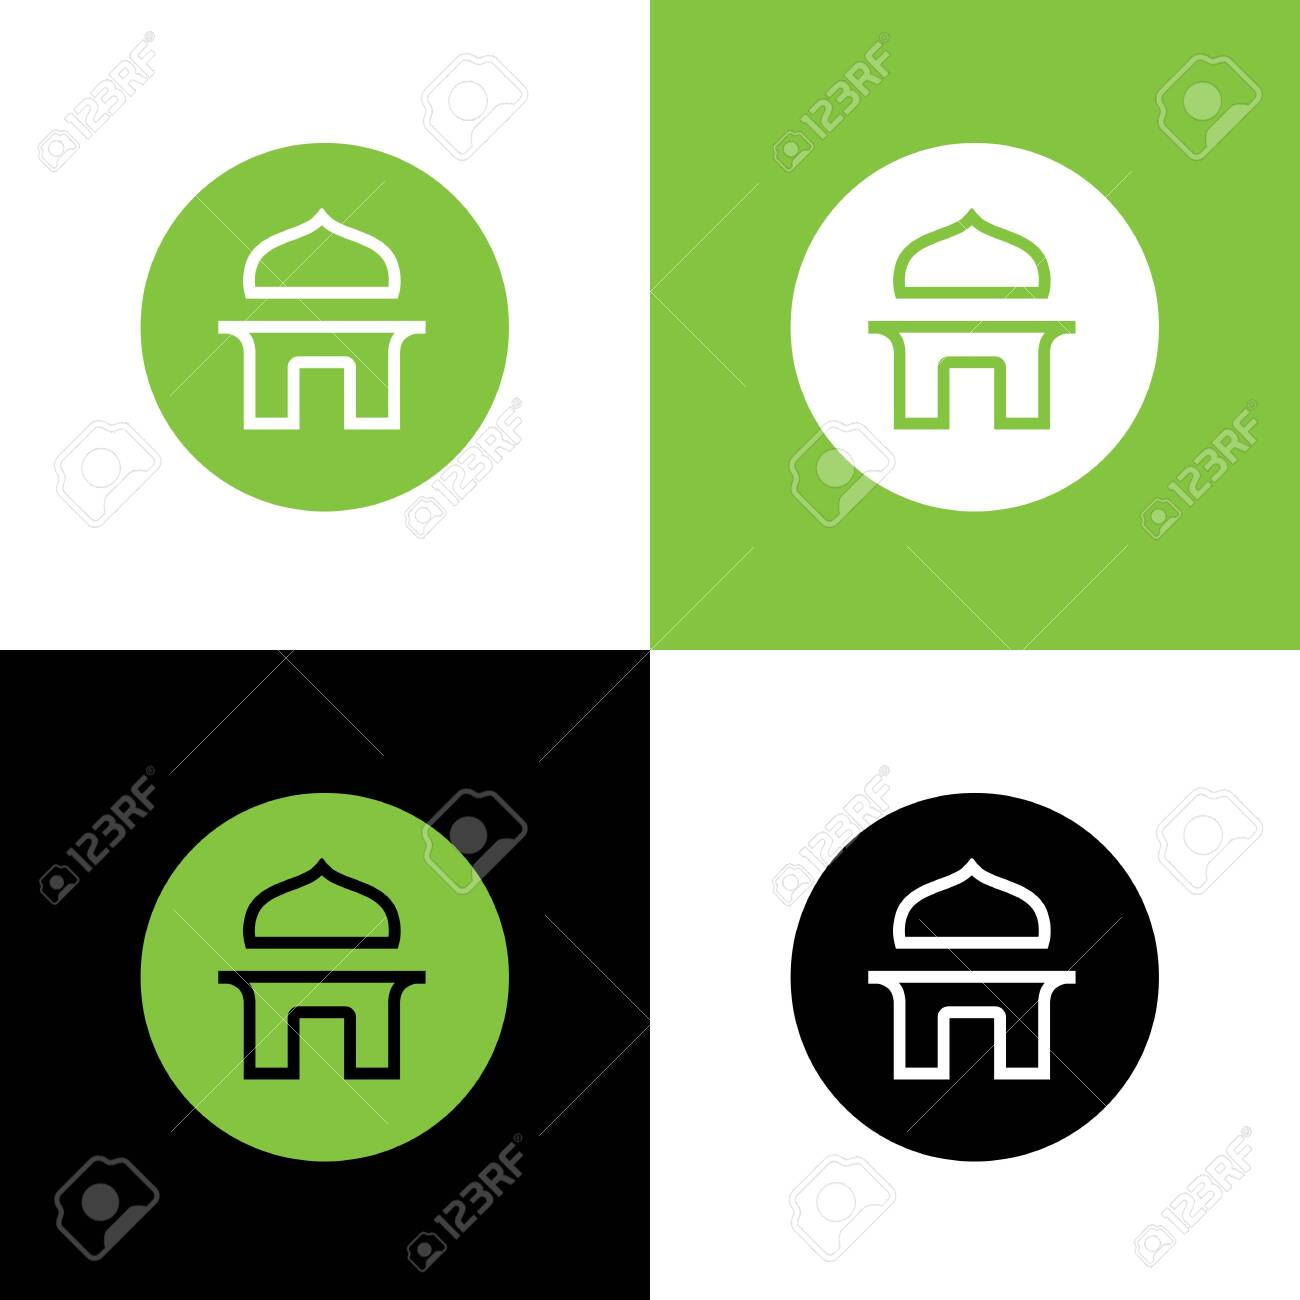 islamic mosque building circle logo icon design islam religion royalty free cliparts vectors and stock illustration image 134434749 123rf com